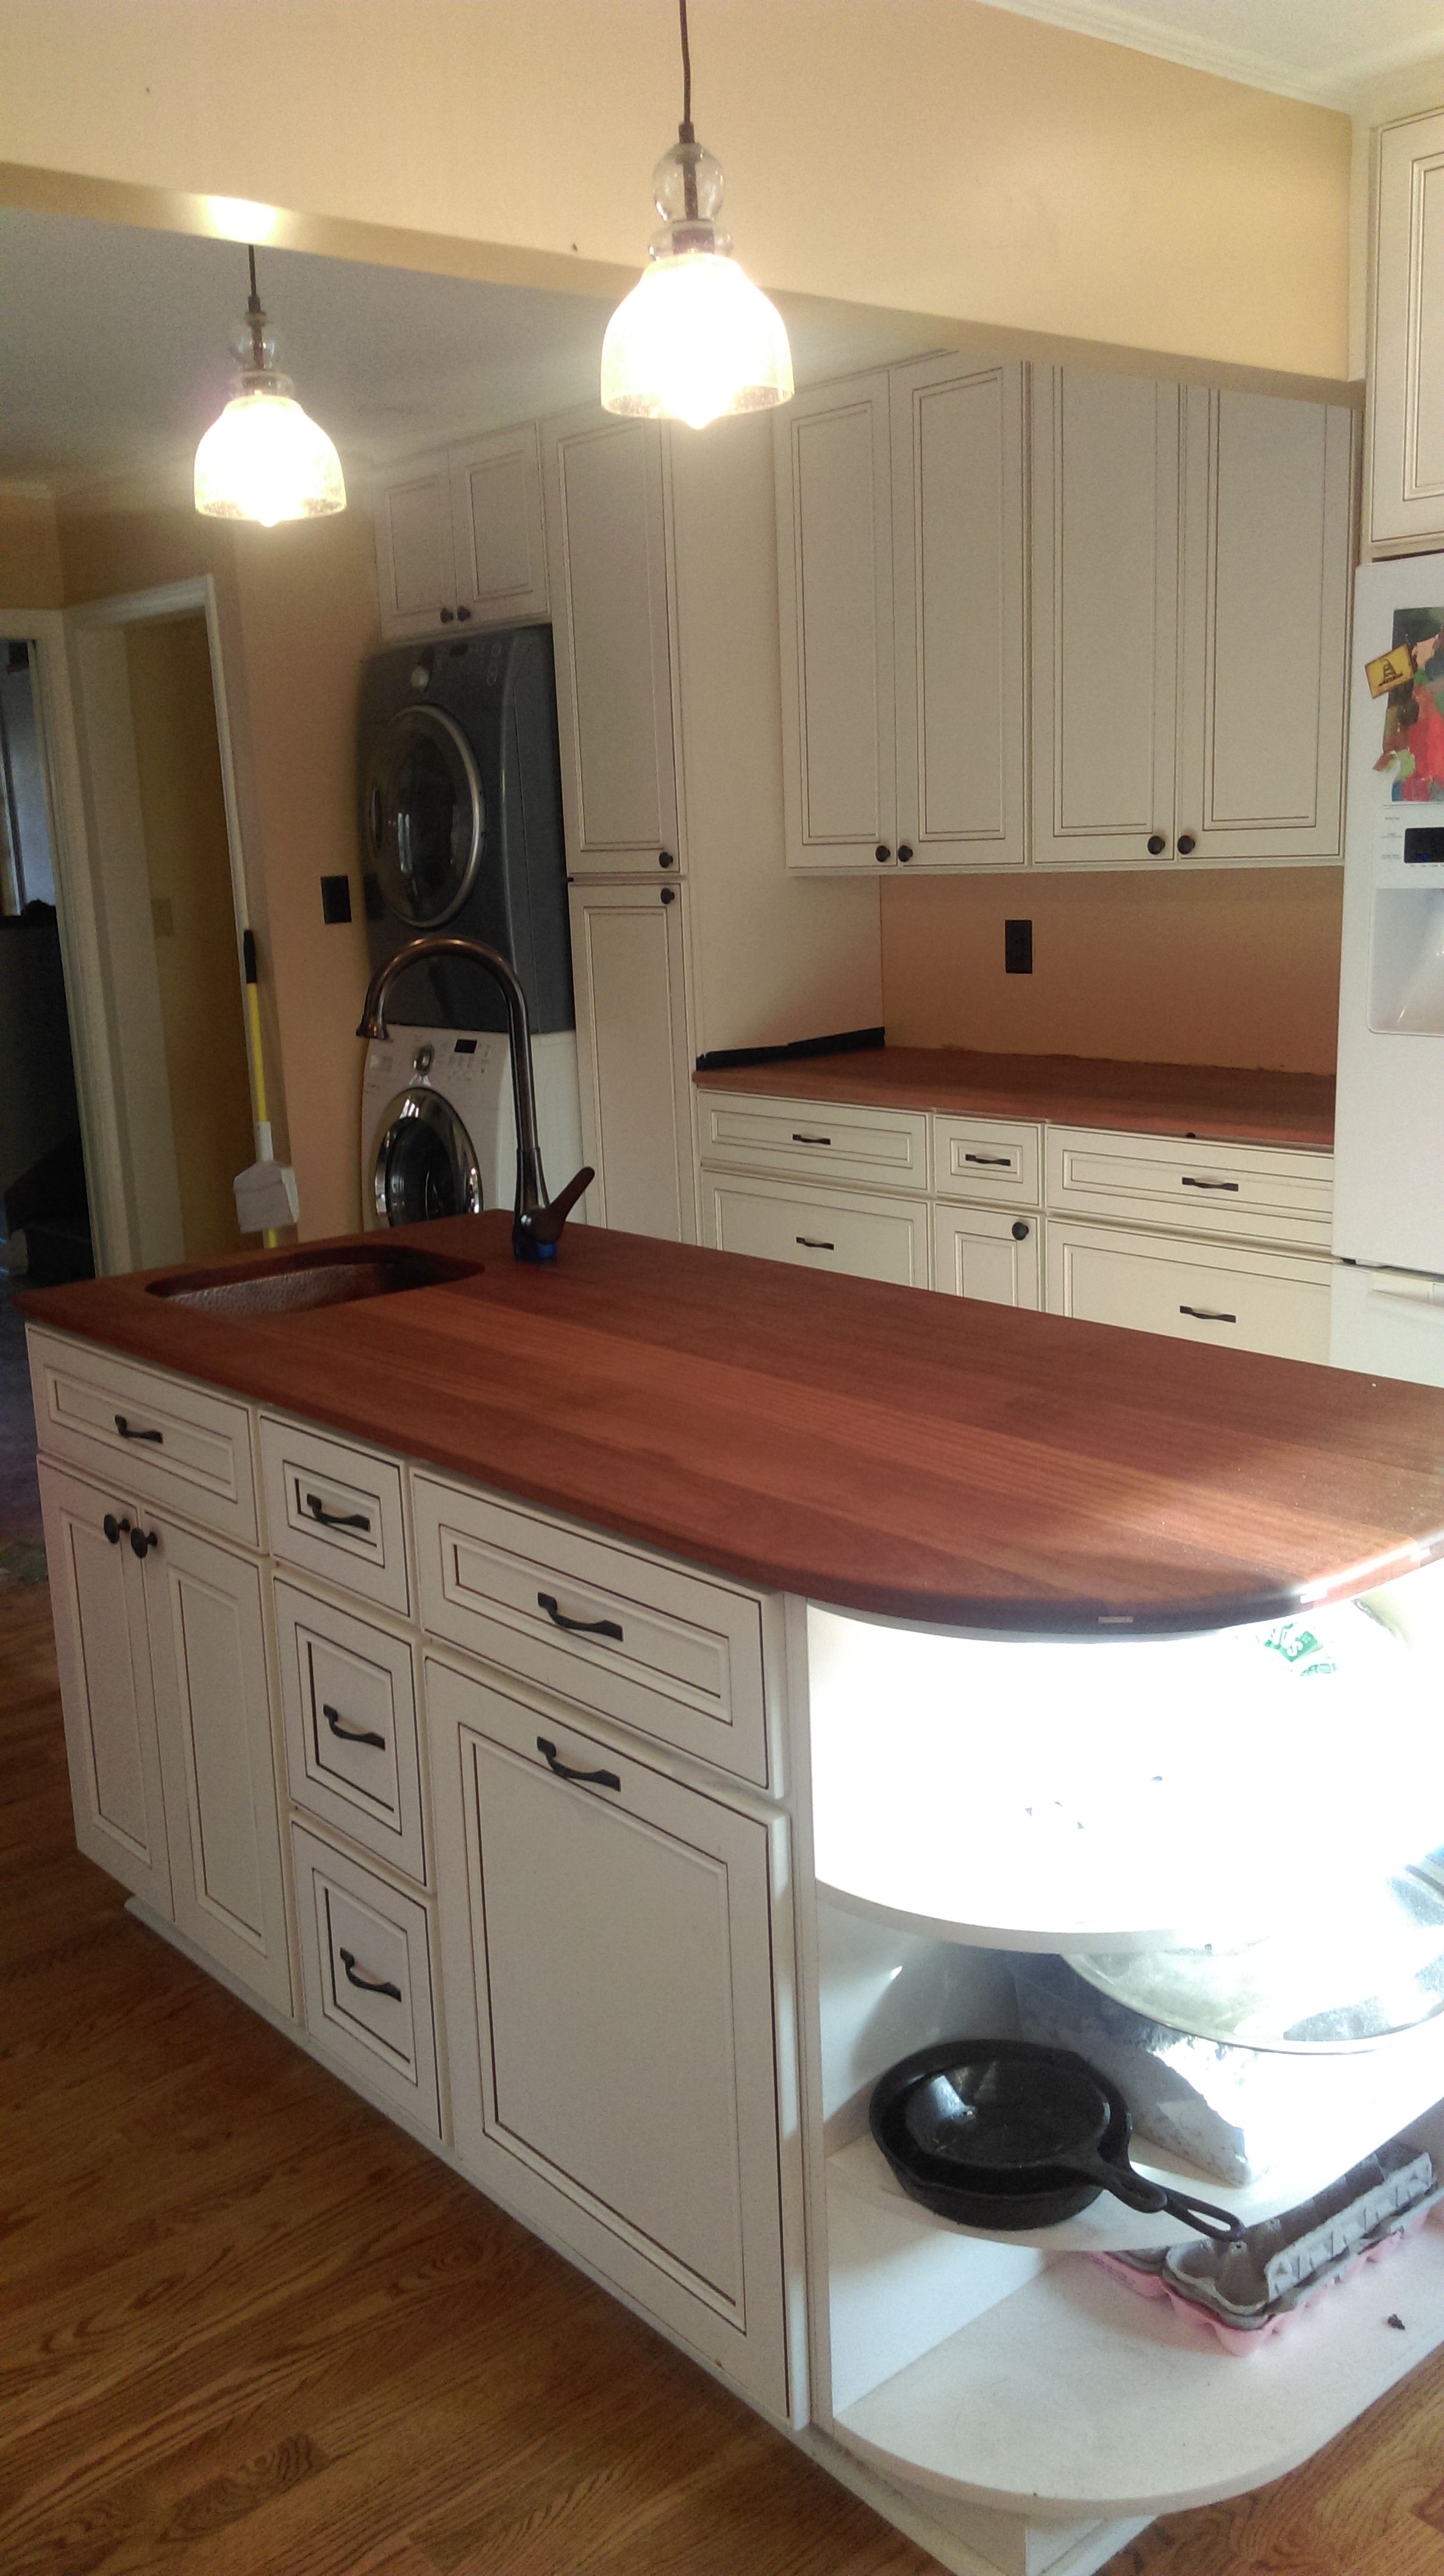 Our York Antique White Cabinets Are An Extremely High End Line That Is Very Popular Antique White Kitchen Cabinets White Diy Kitchens Kitchen Remodel Layout